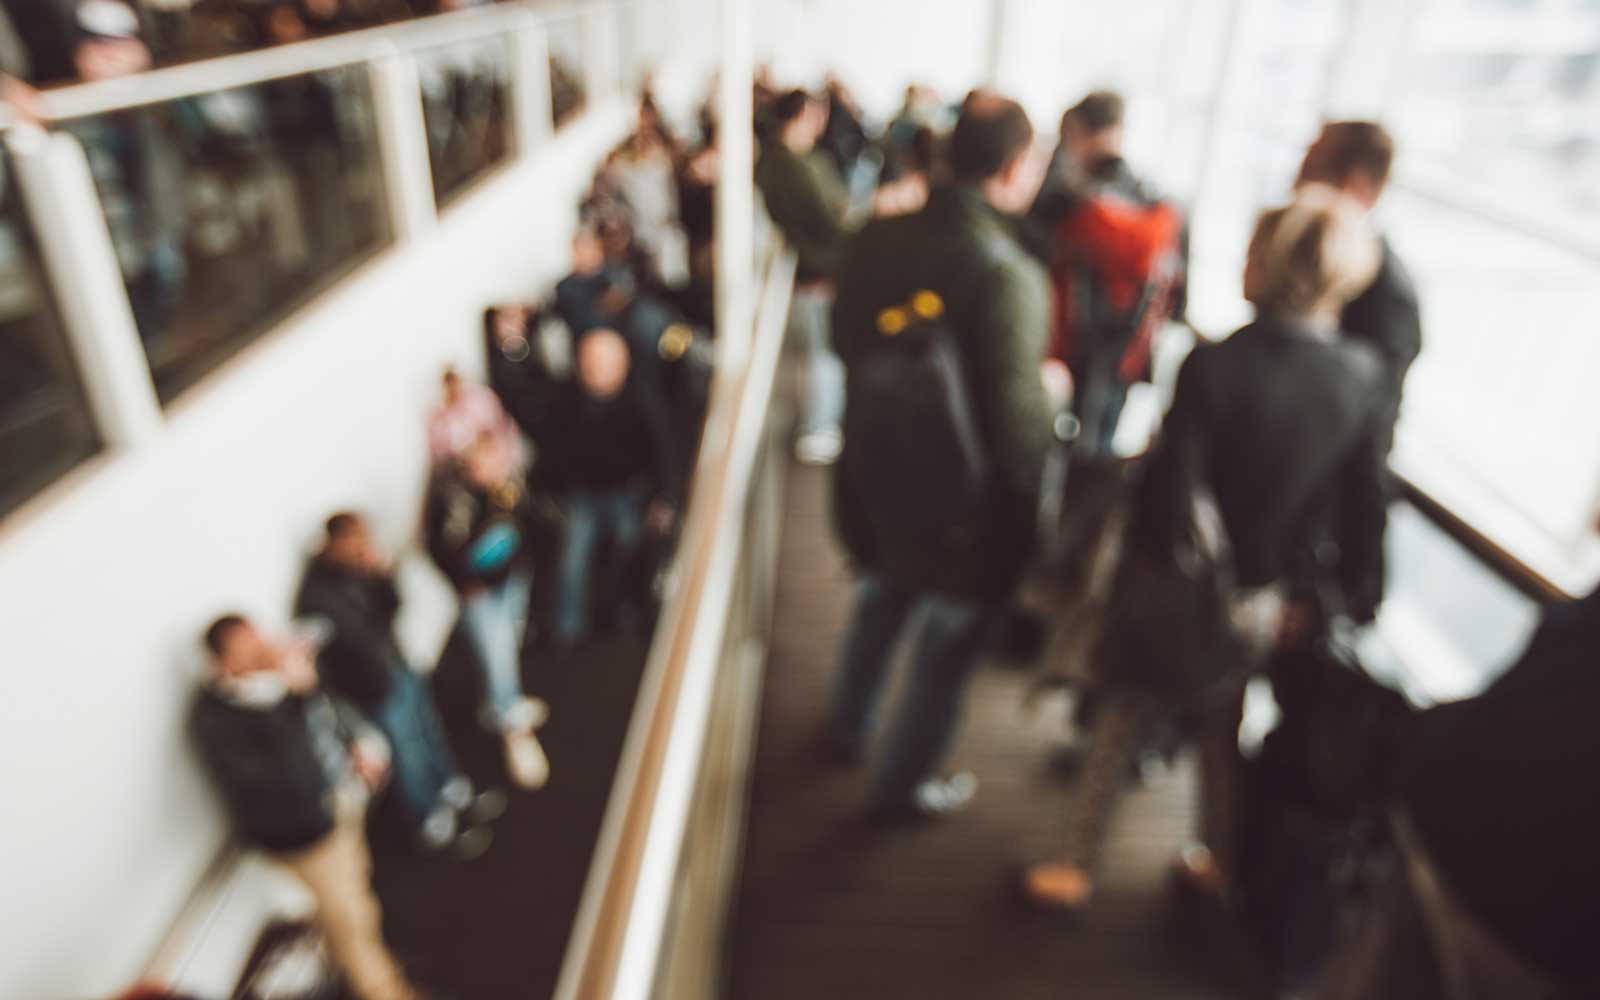 How to Check the Length of Security Lines Before You Get to the Airport